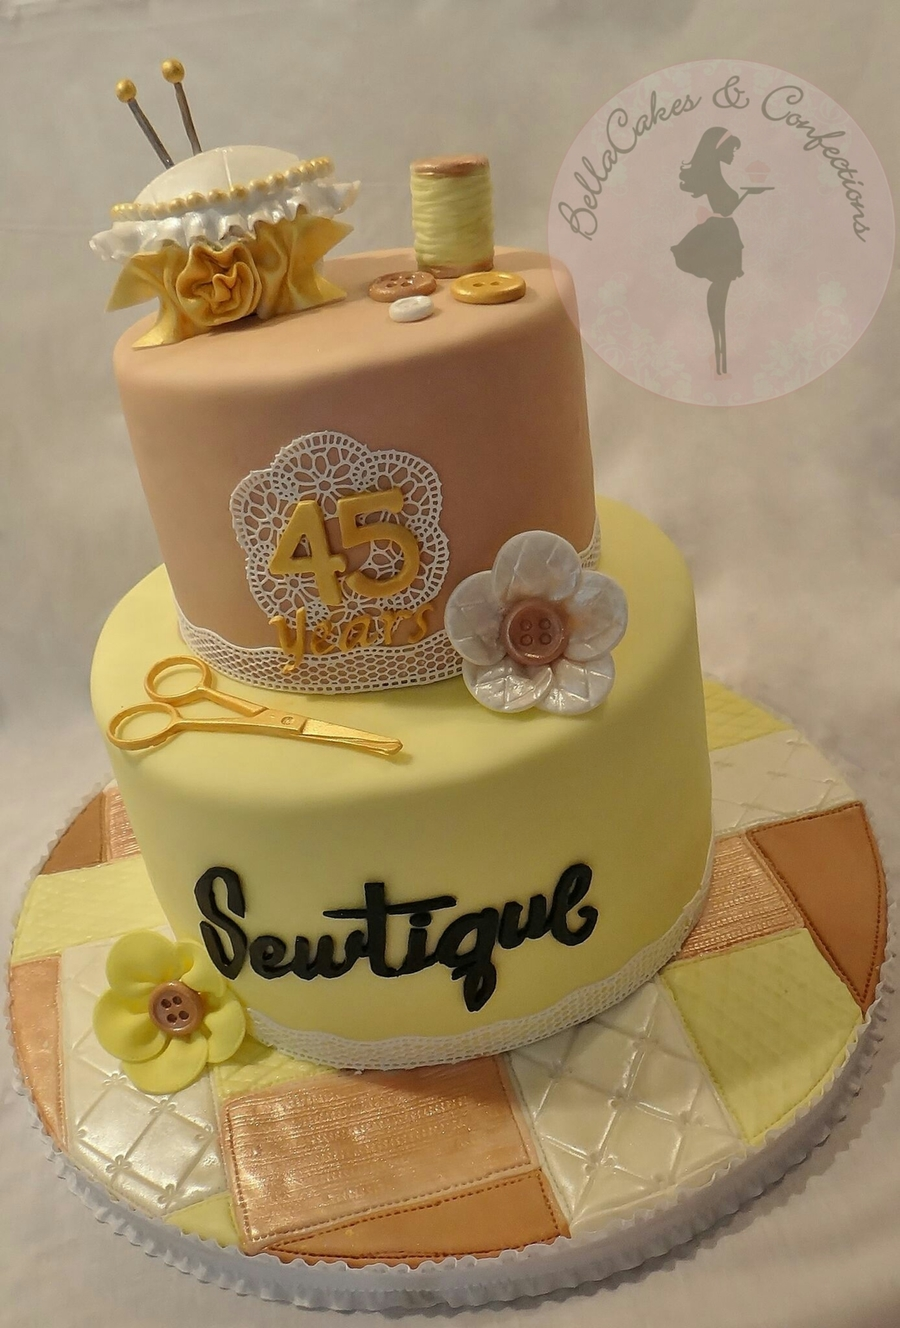 Sewing Theme Cake on Cake Central